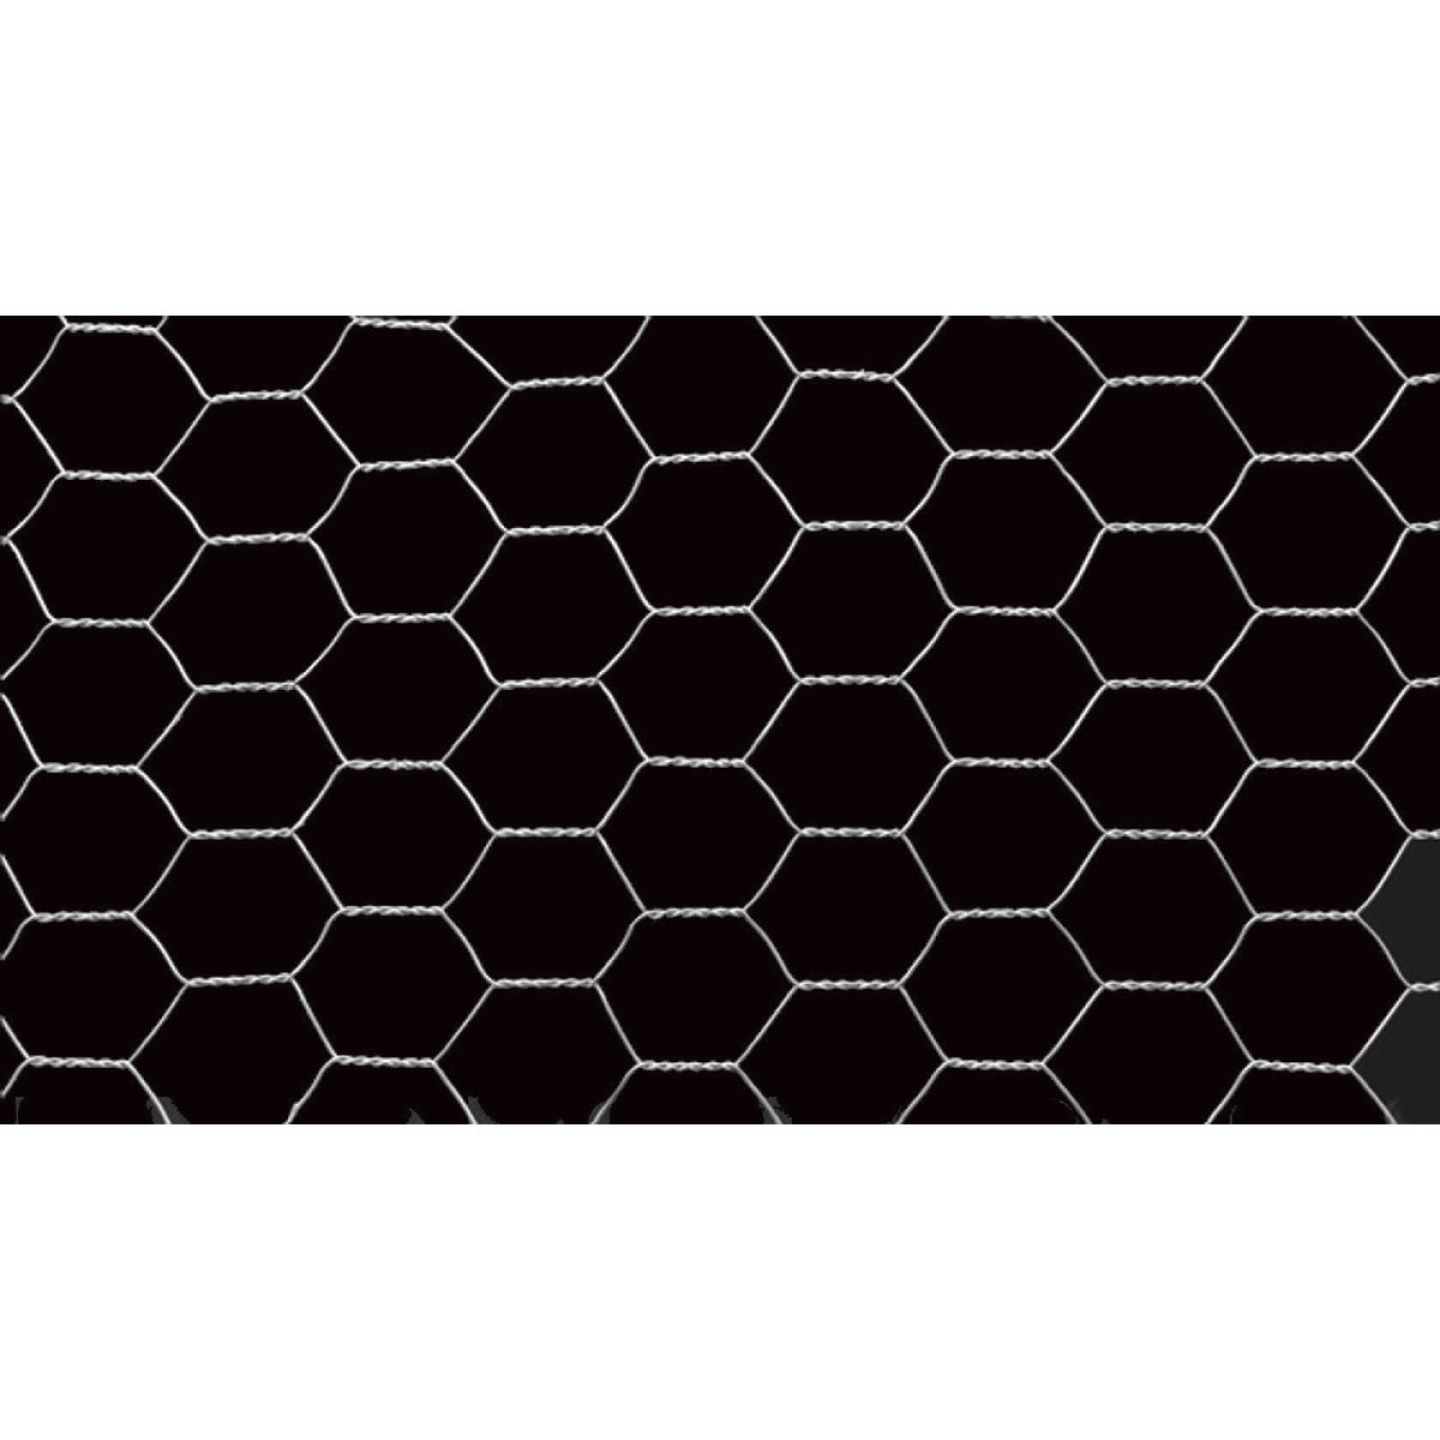 Do it 1 In. x 36 In. H. x 25 Ft. L. Hexagonal Wire Poultry Netting Image 3